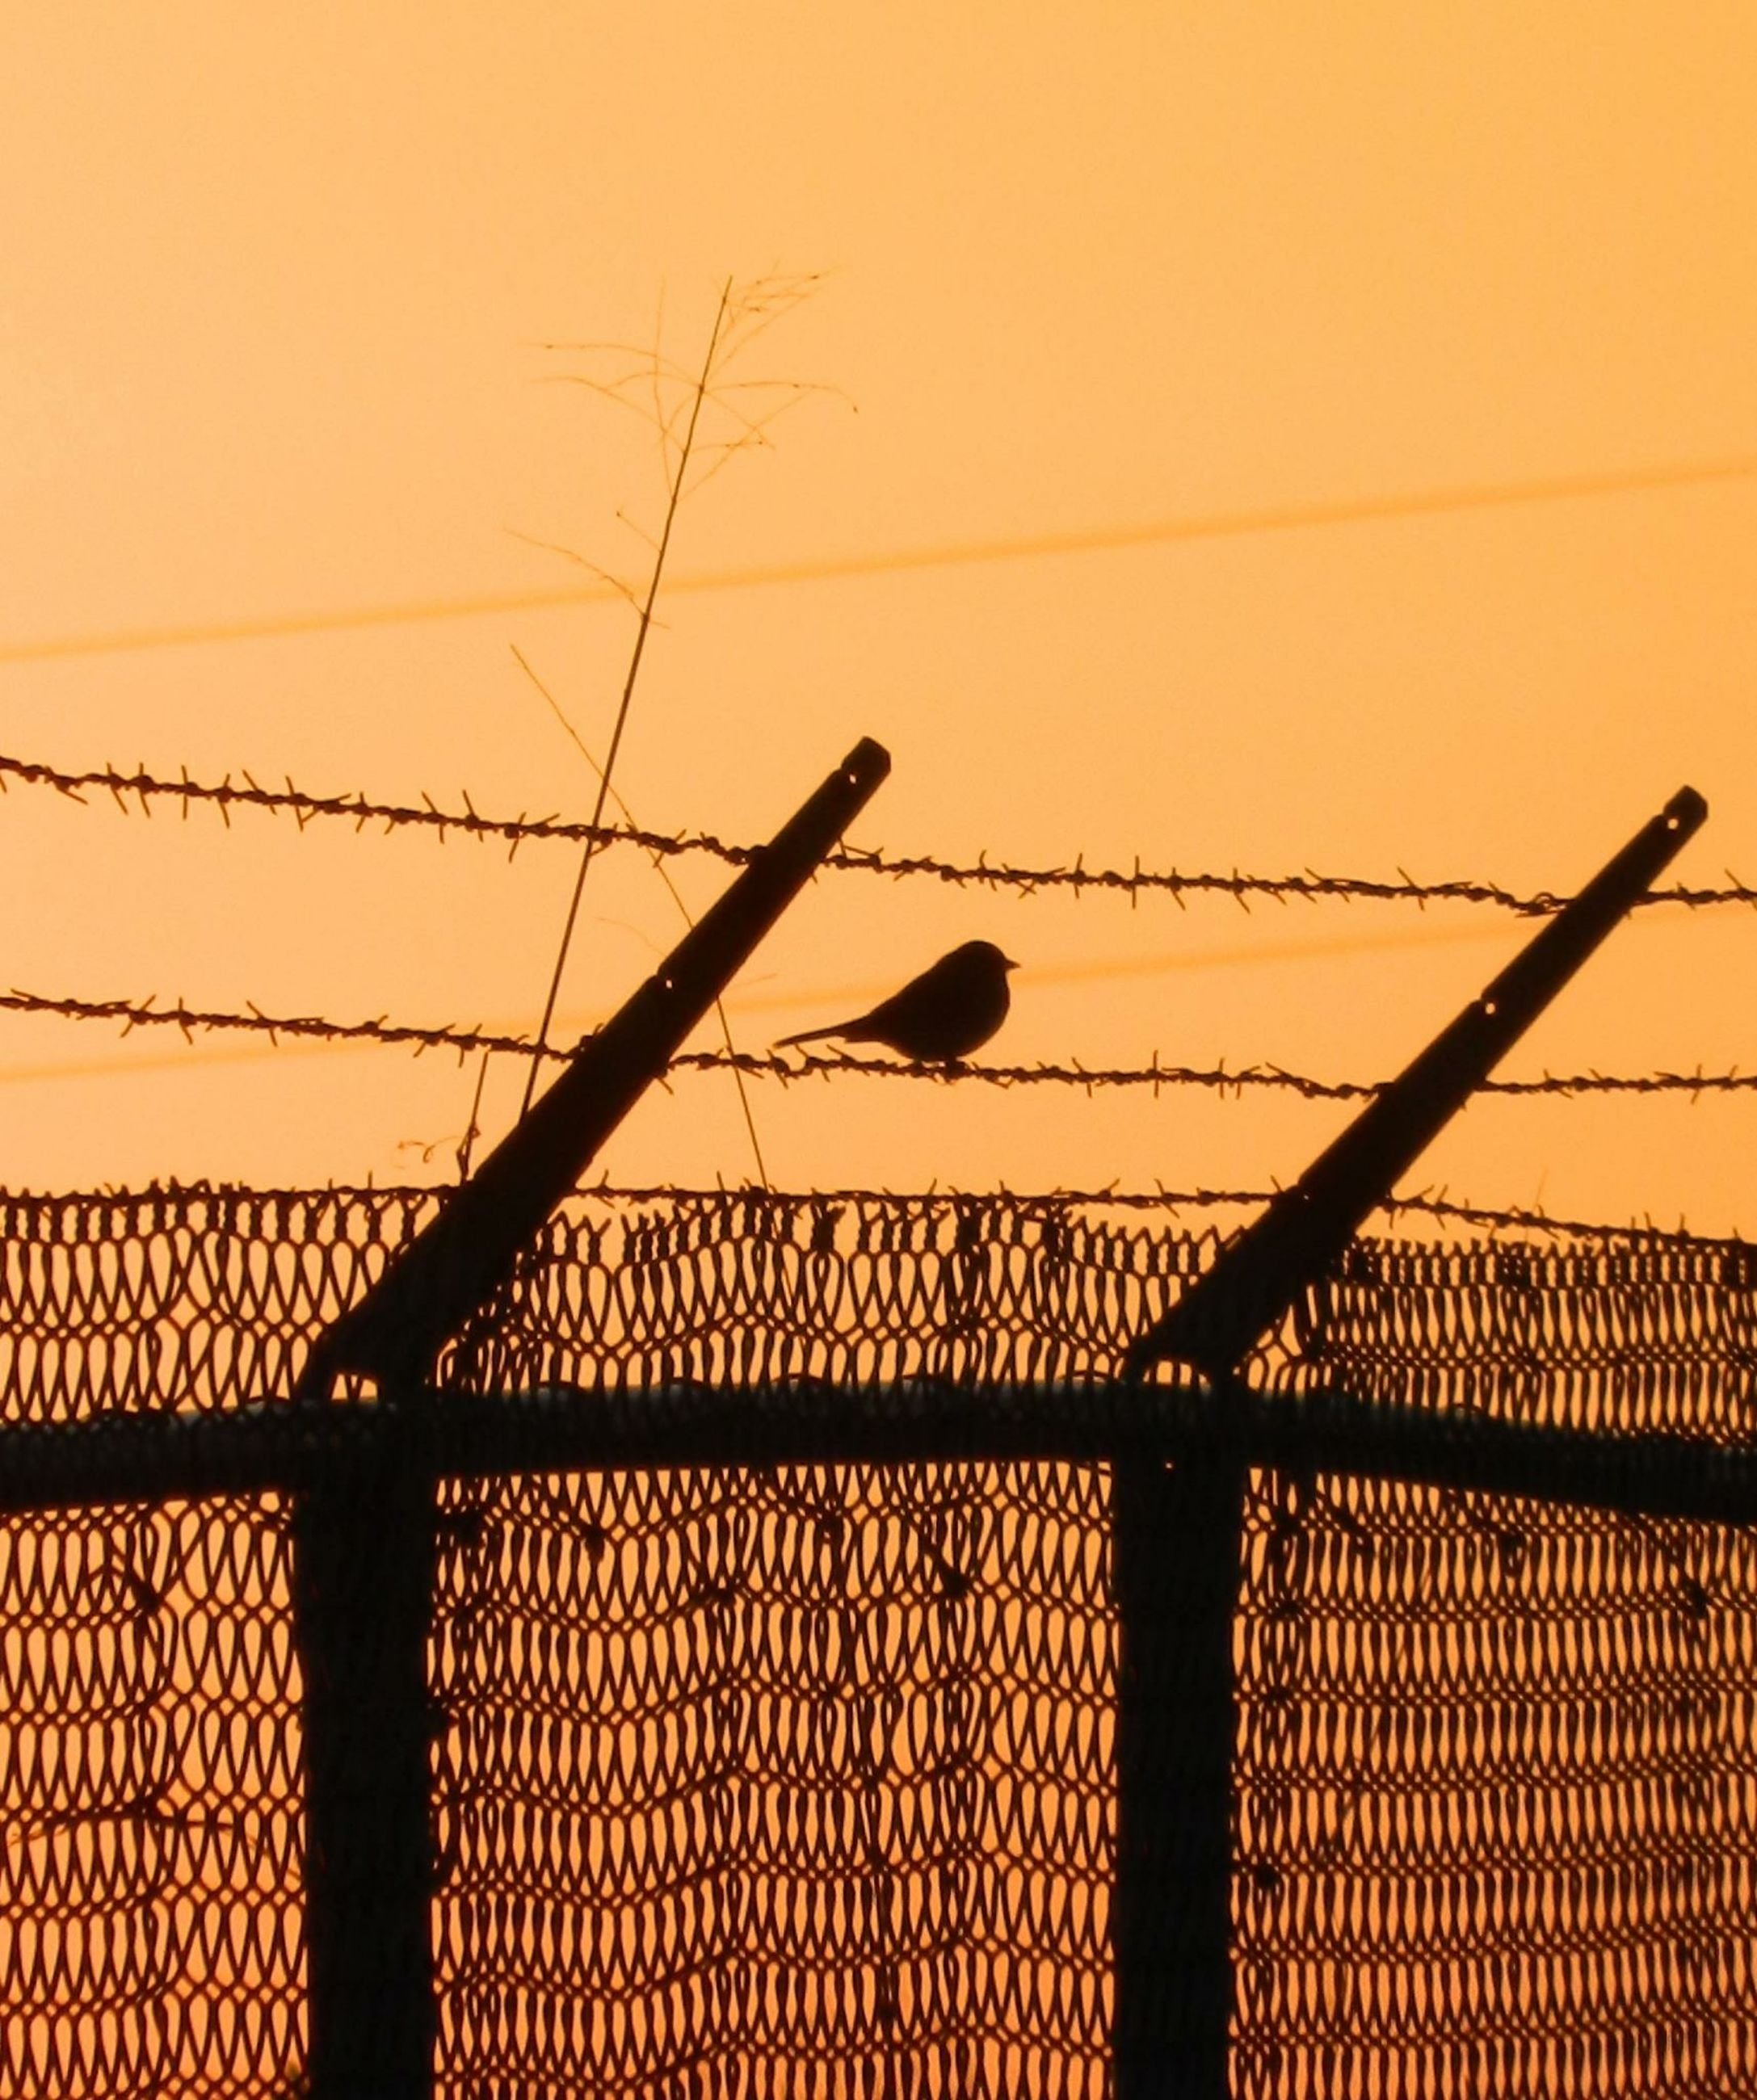 sunset, orange color, fence, protection, safety, metal, barbed wire, silhouette, chainlink fence, security, low angle view, sunlight, pattern, no people, sky, outdoors, nature, connection, built structure, power line